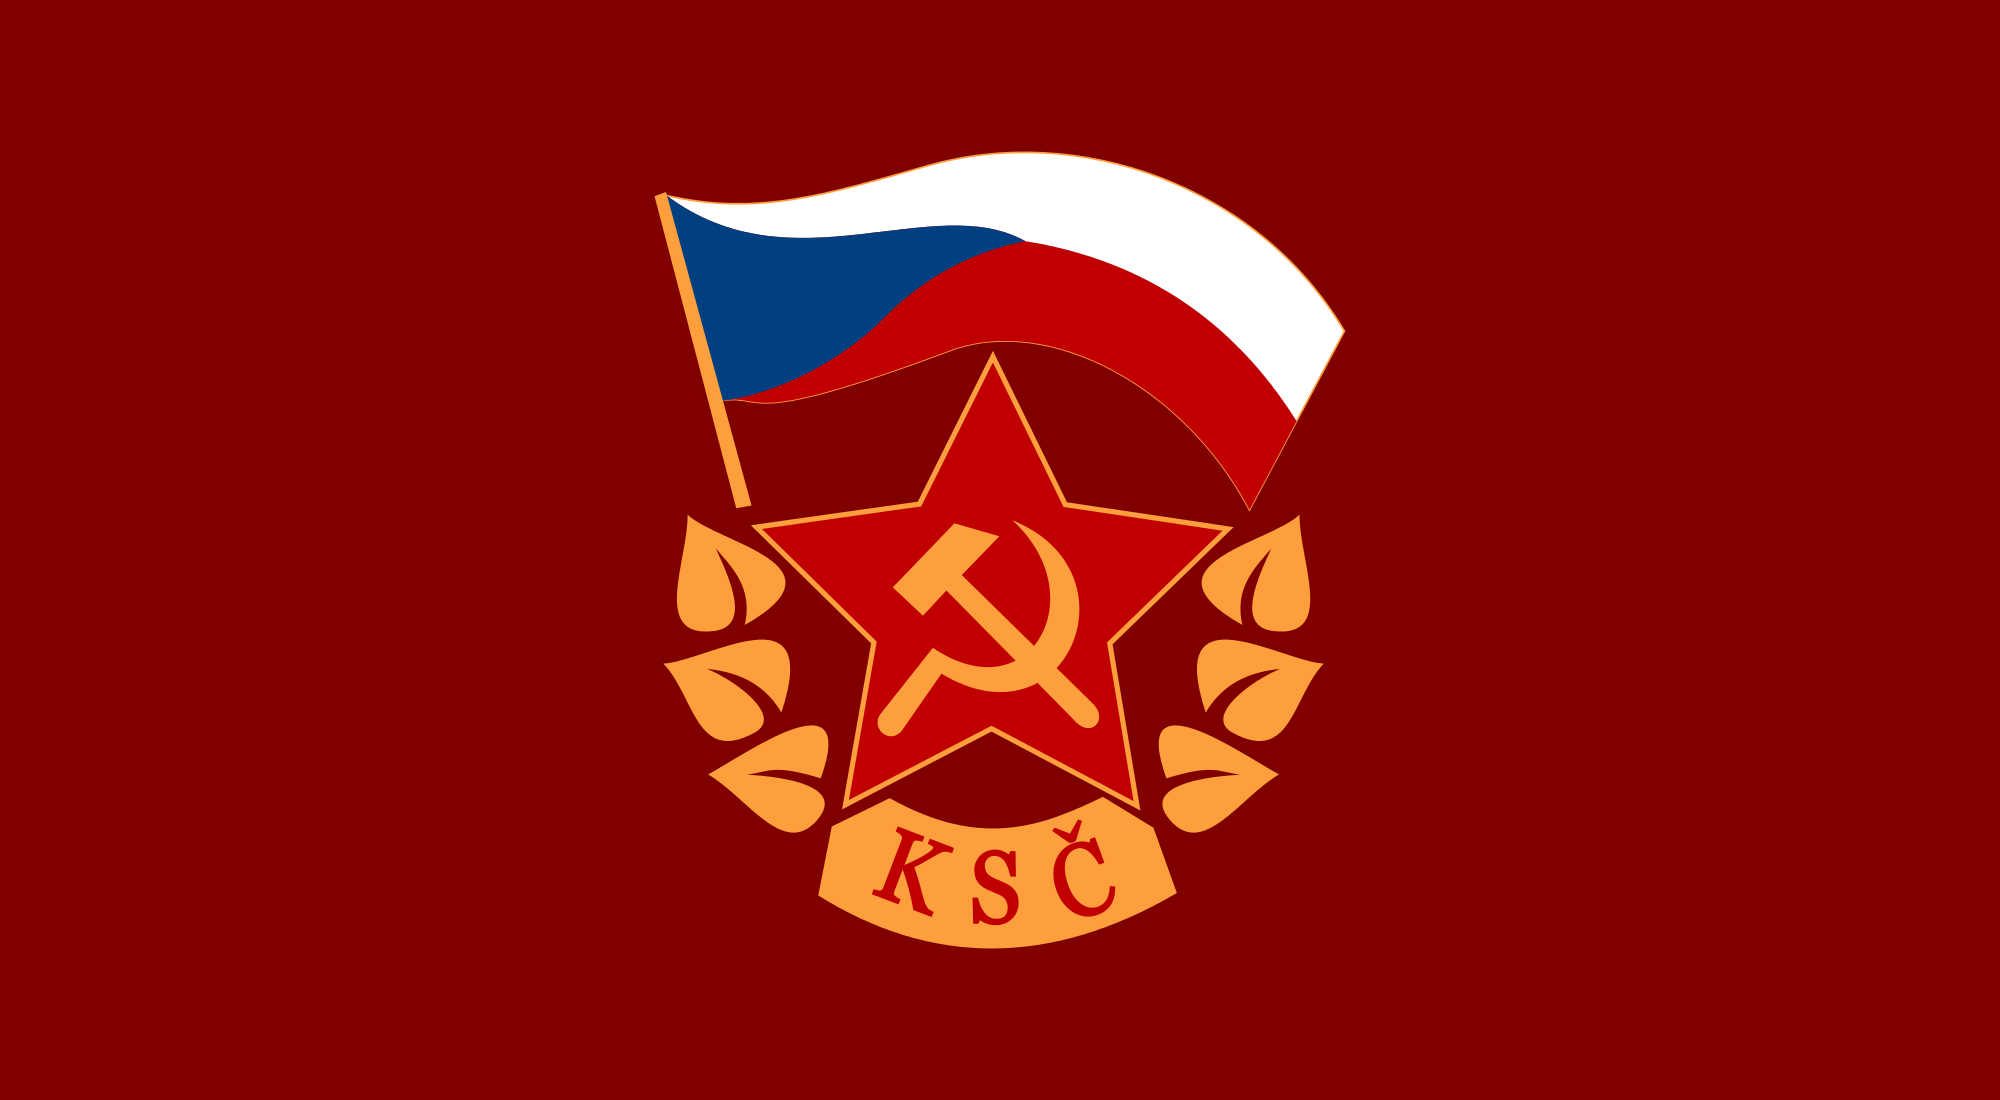 Communist-Party-of-Czechoslovakia-wallpaper-wpc9003705